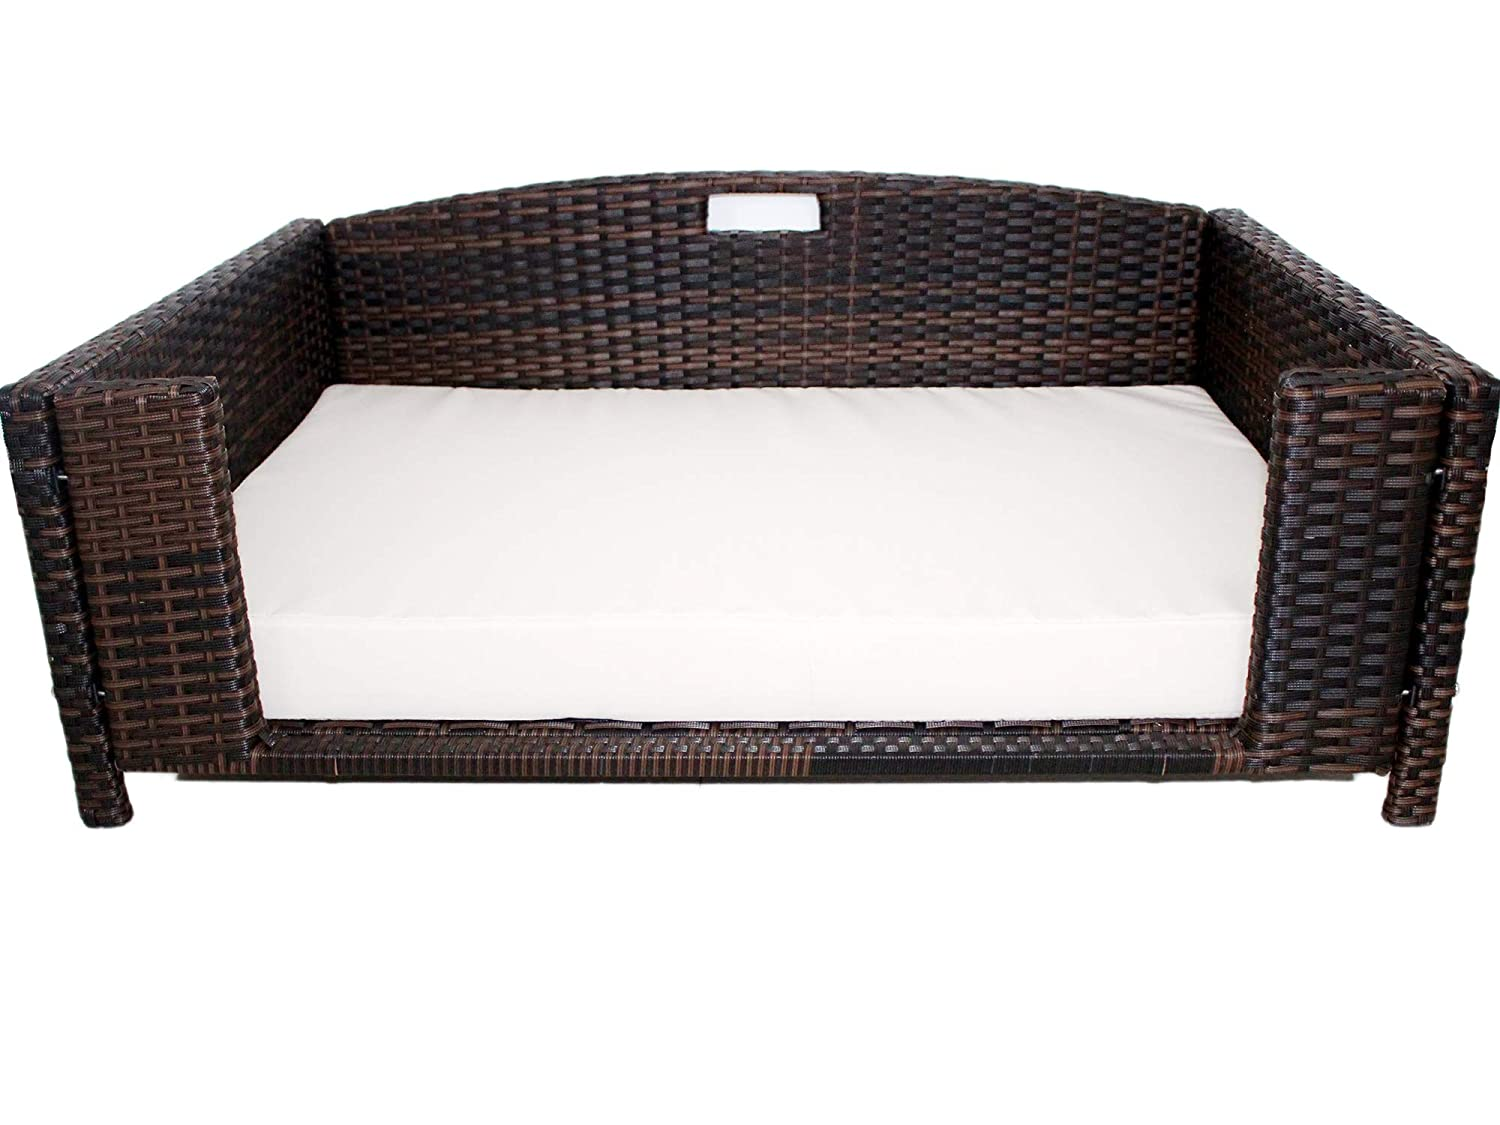 Iconic Pet Rectangular Rattan / Wicker Pet Bed in Varying Sizes – Metal Framed Indoor / Outdoor Furniture for Dogs / Cats Made of Pliable Rattan, Easy to Clean, Water Resistant Cushion Cover